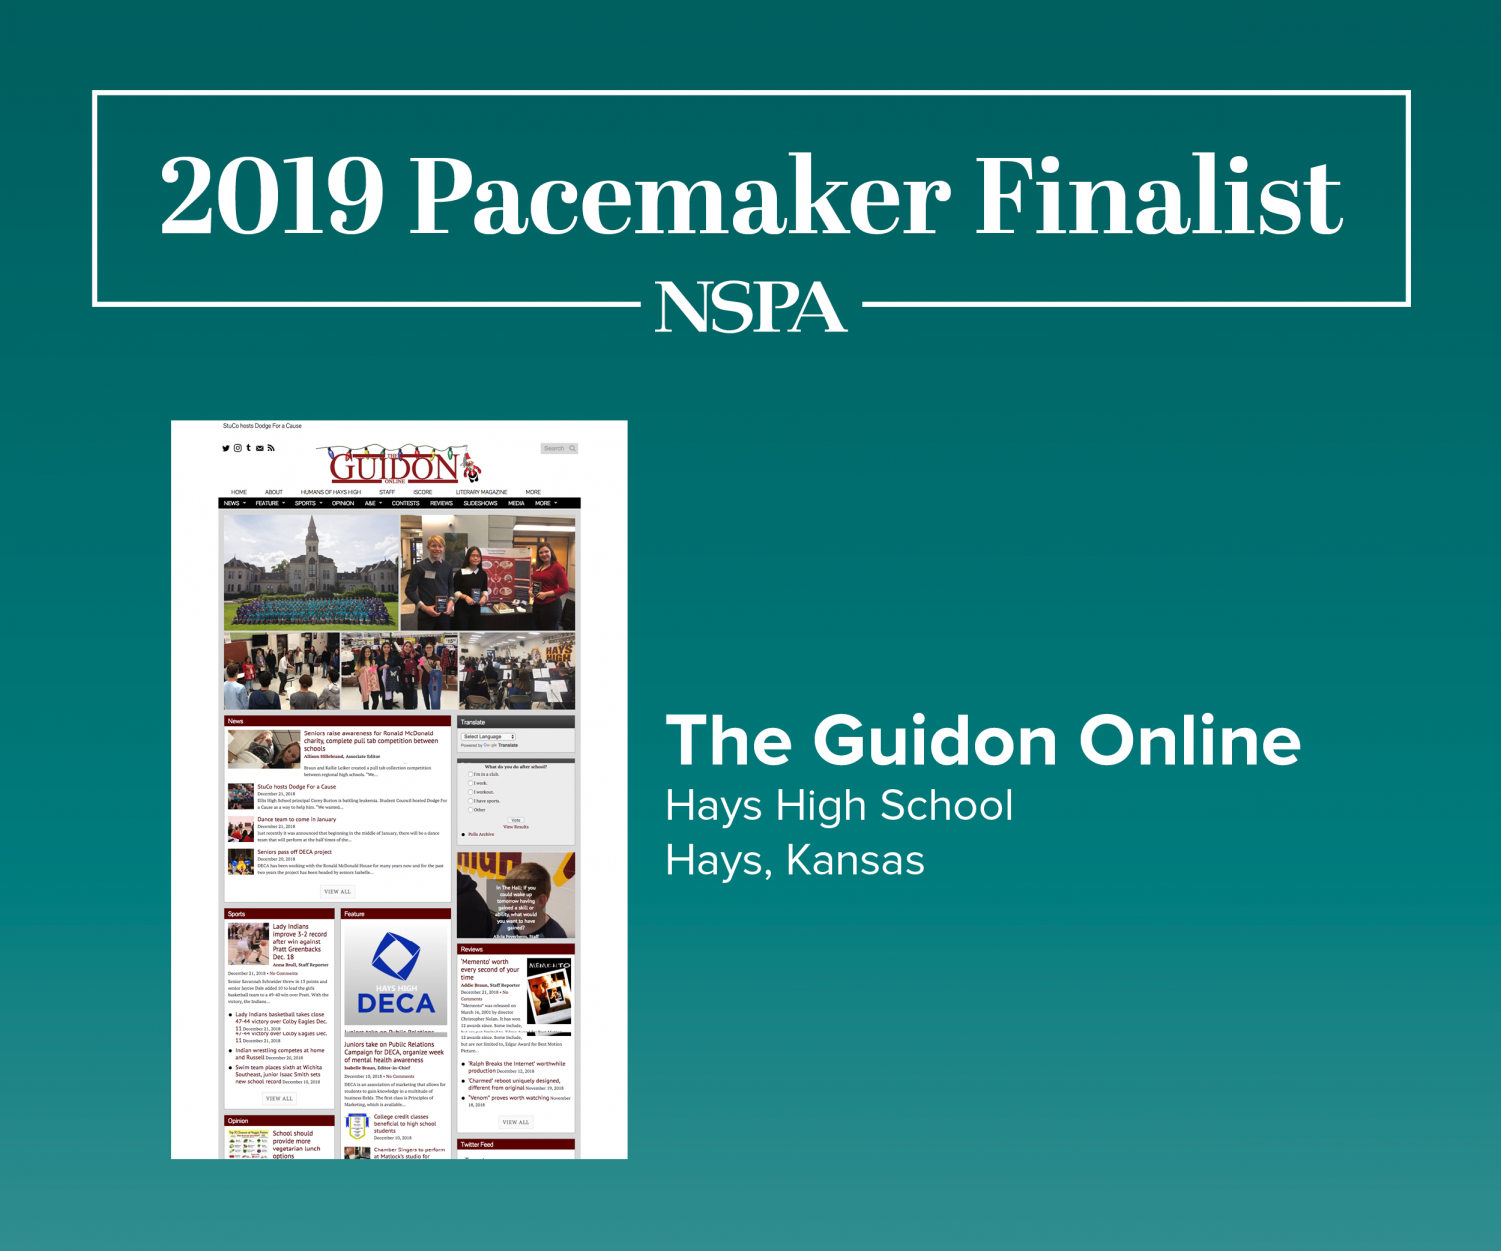 The Guidon new site has been recognized as a 2019 Pacemaker Finalist for their excellence in journalism. Pacemaker winners will be announced April 27.